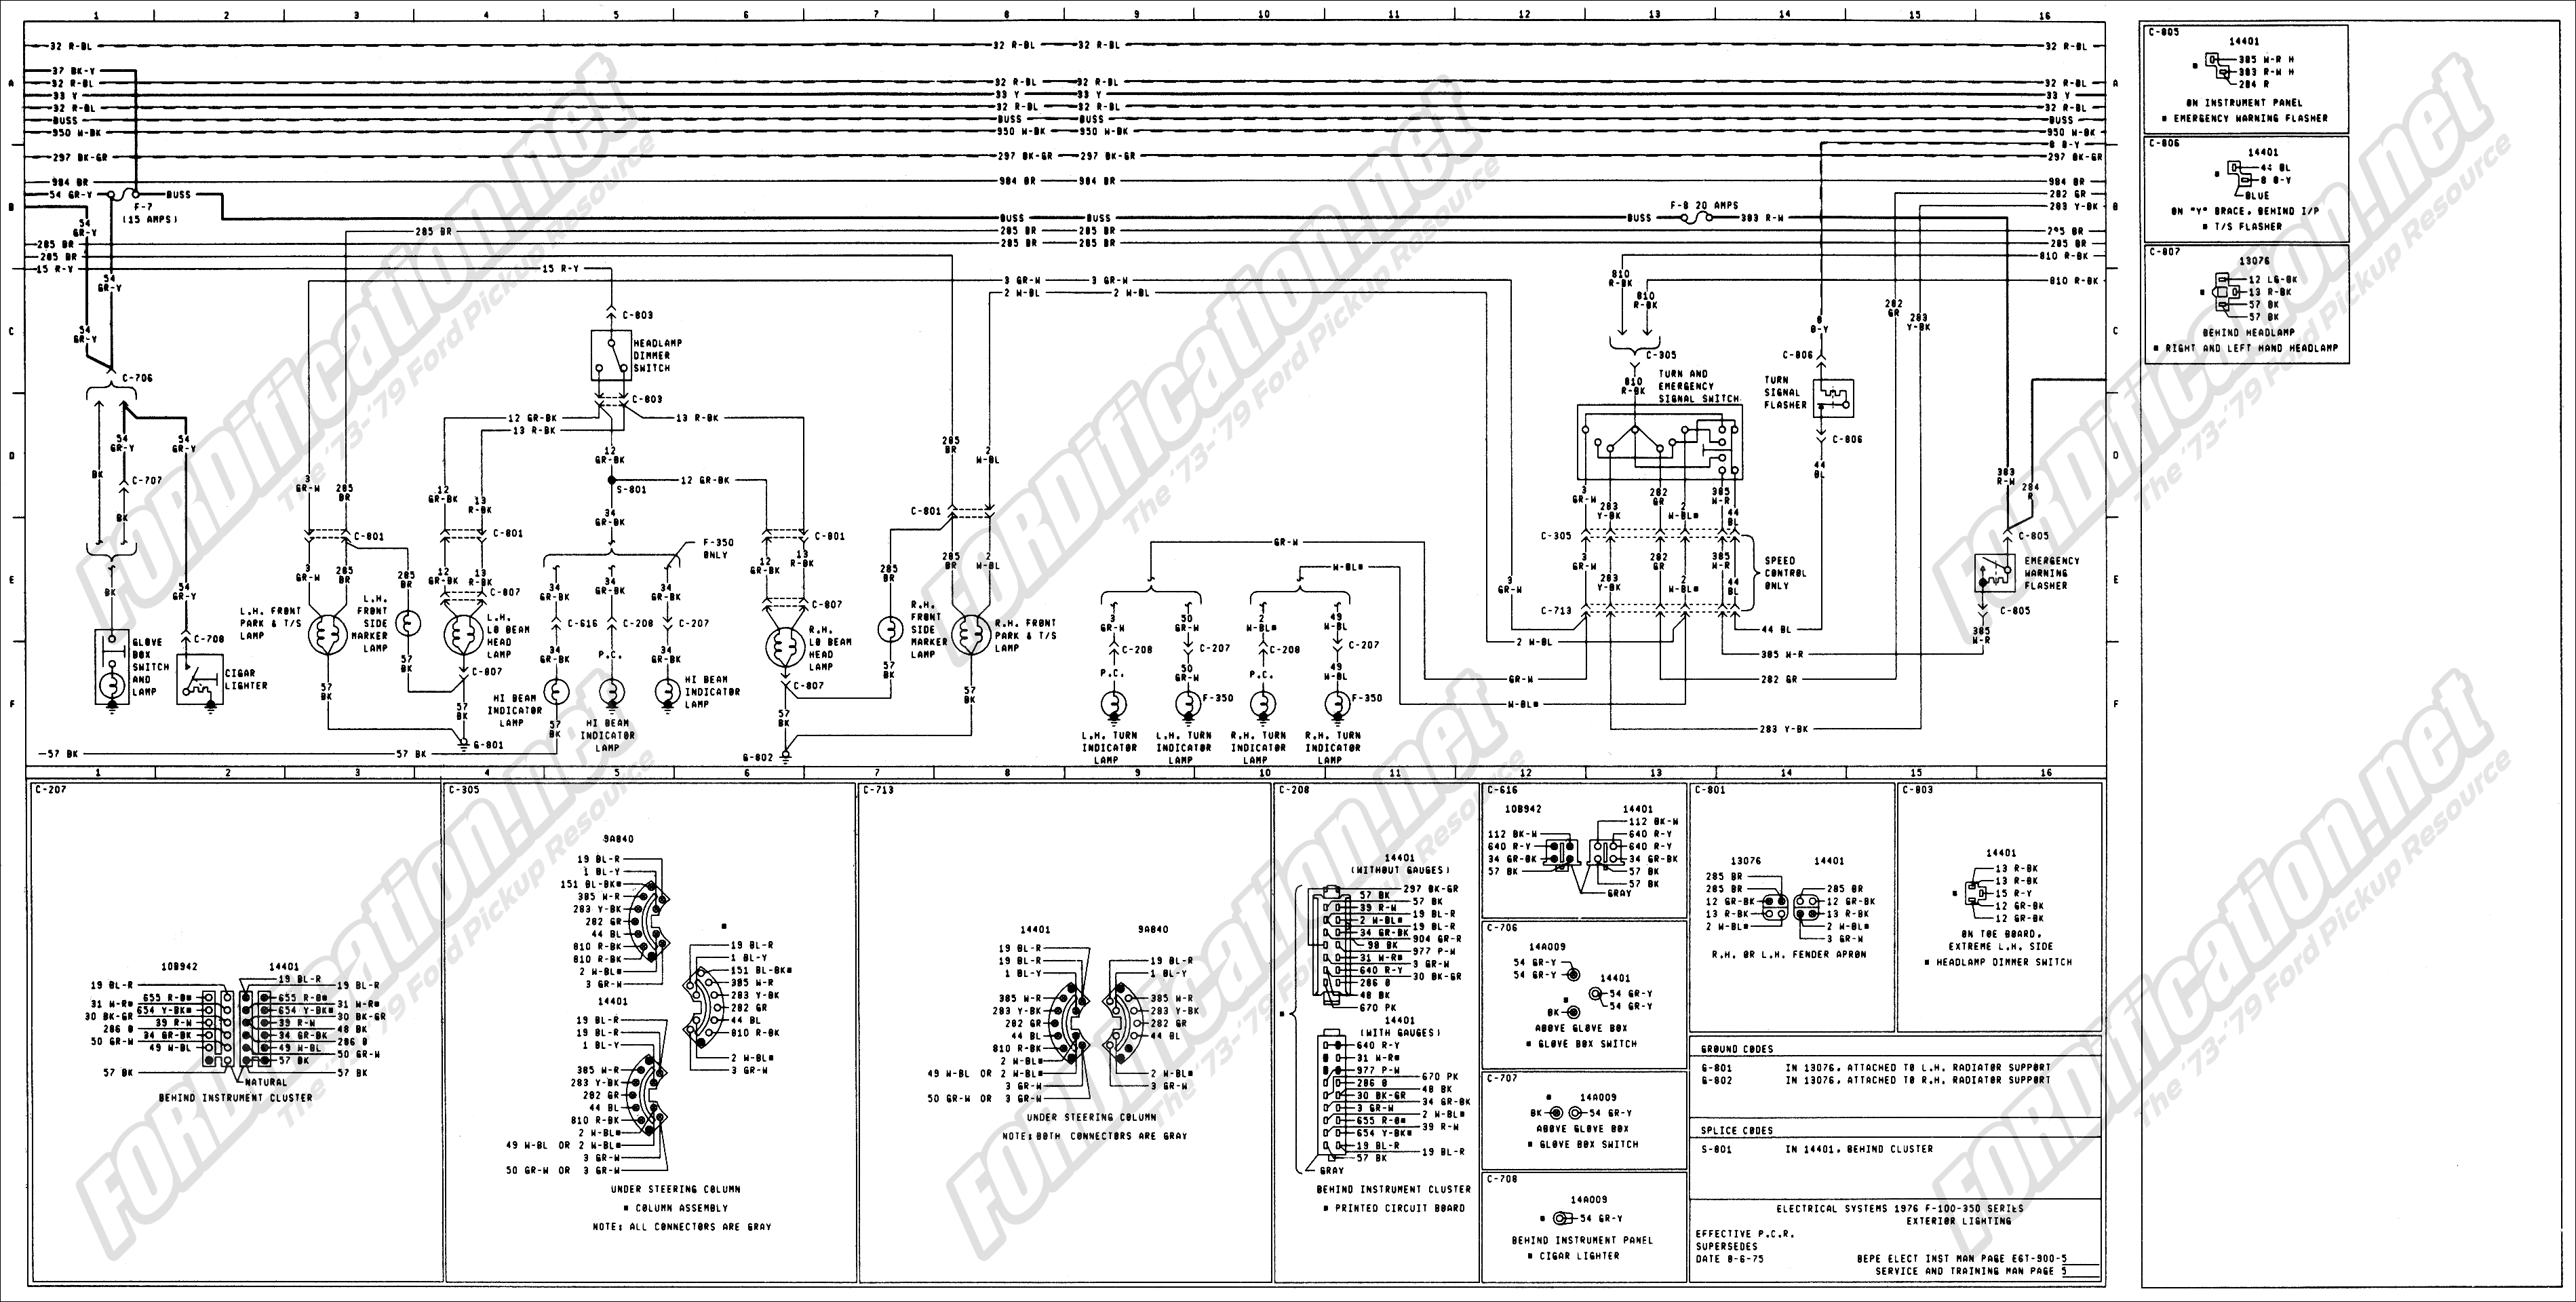 wiring_76master_5of9 1983 ford f100 wiring diagram wiring diagram simonand 1979 ford f100 fuse box diagram at edmiracle.co